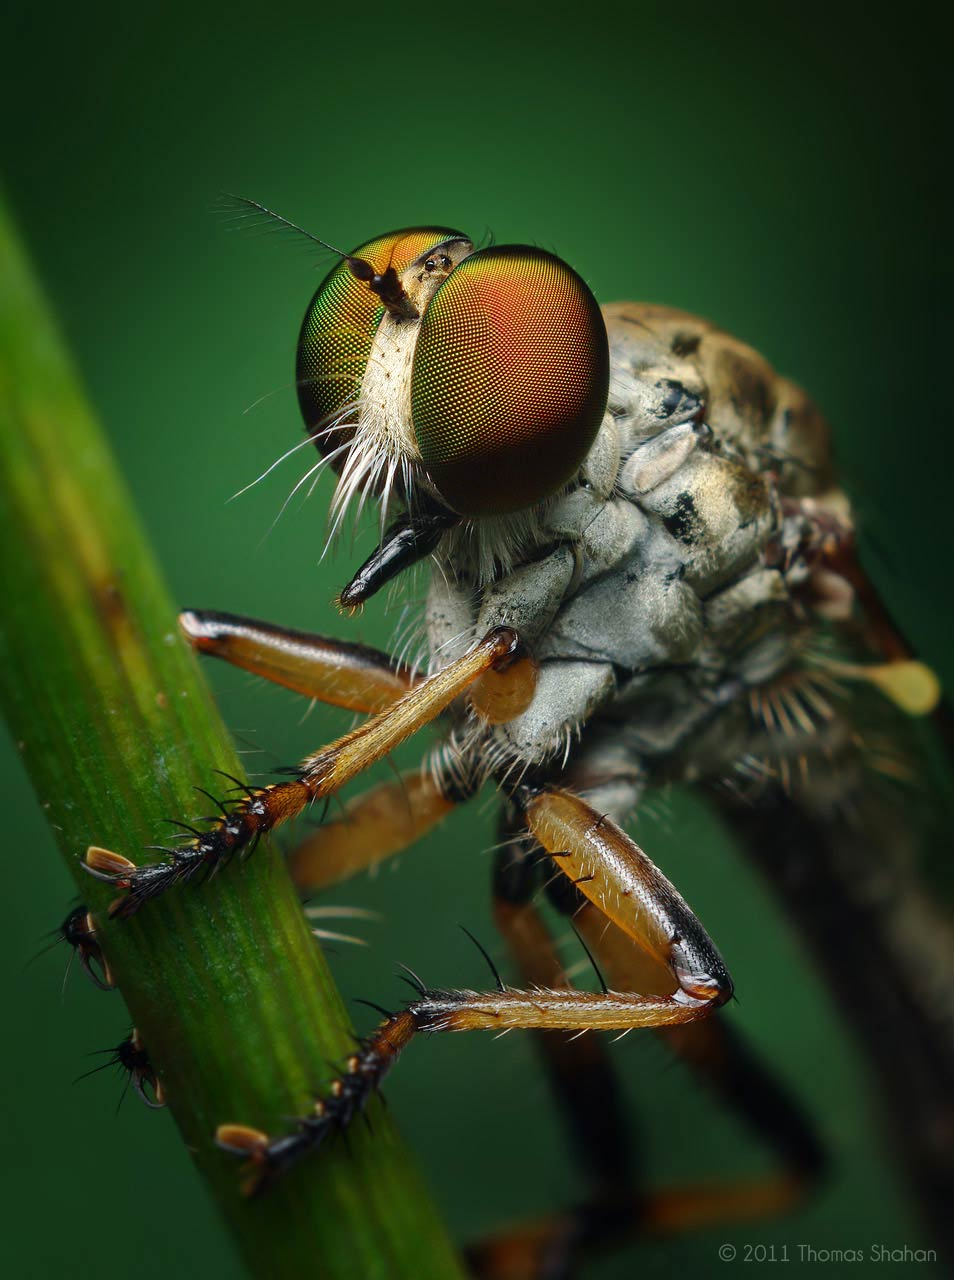 Ommatius Robber Fly by Thomas Shahan